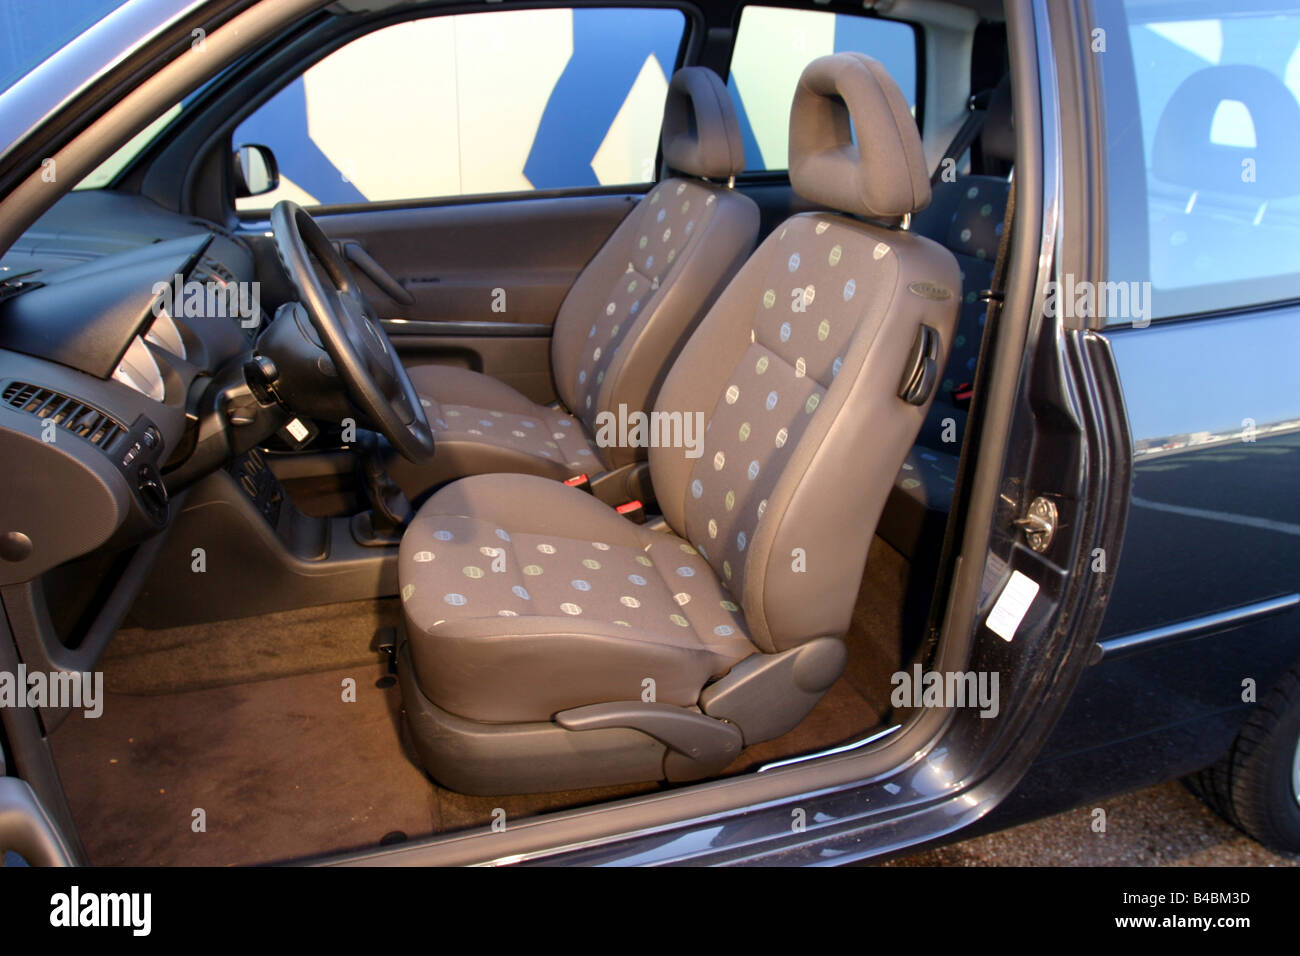 Car, Miniapprox.s, Limousine, FGHDS - Stock Image